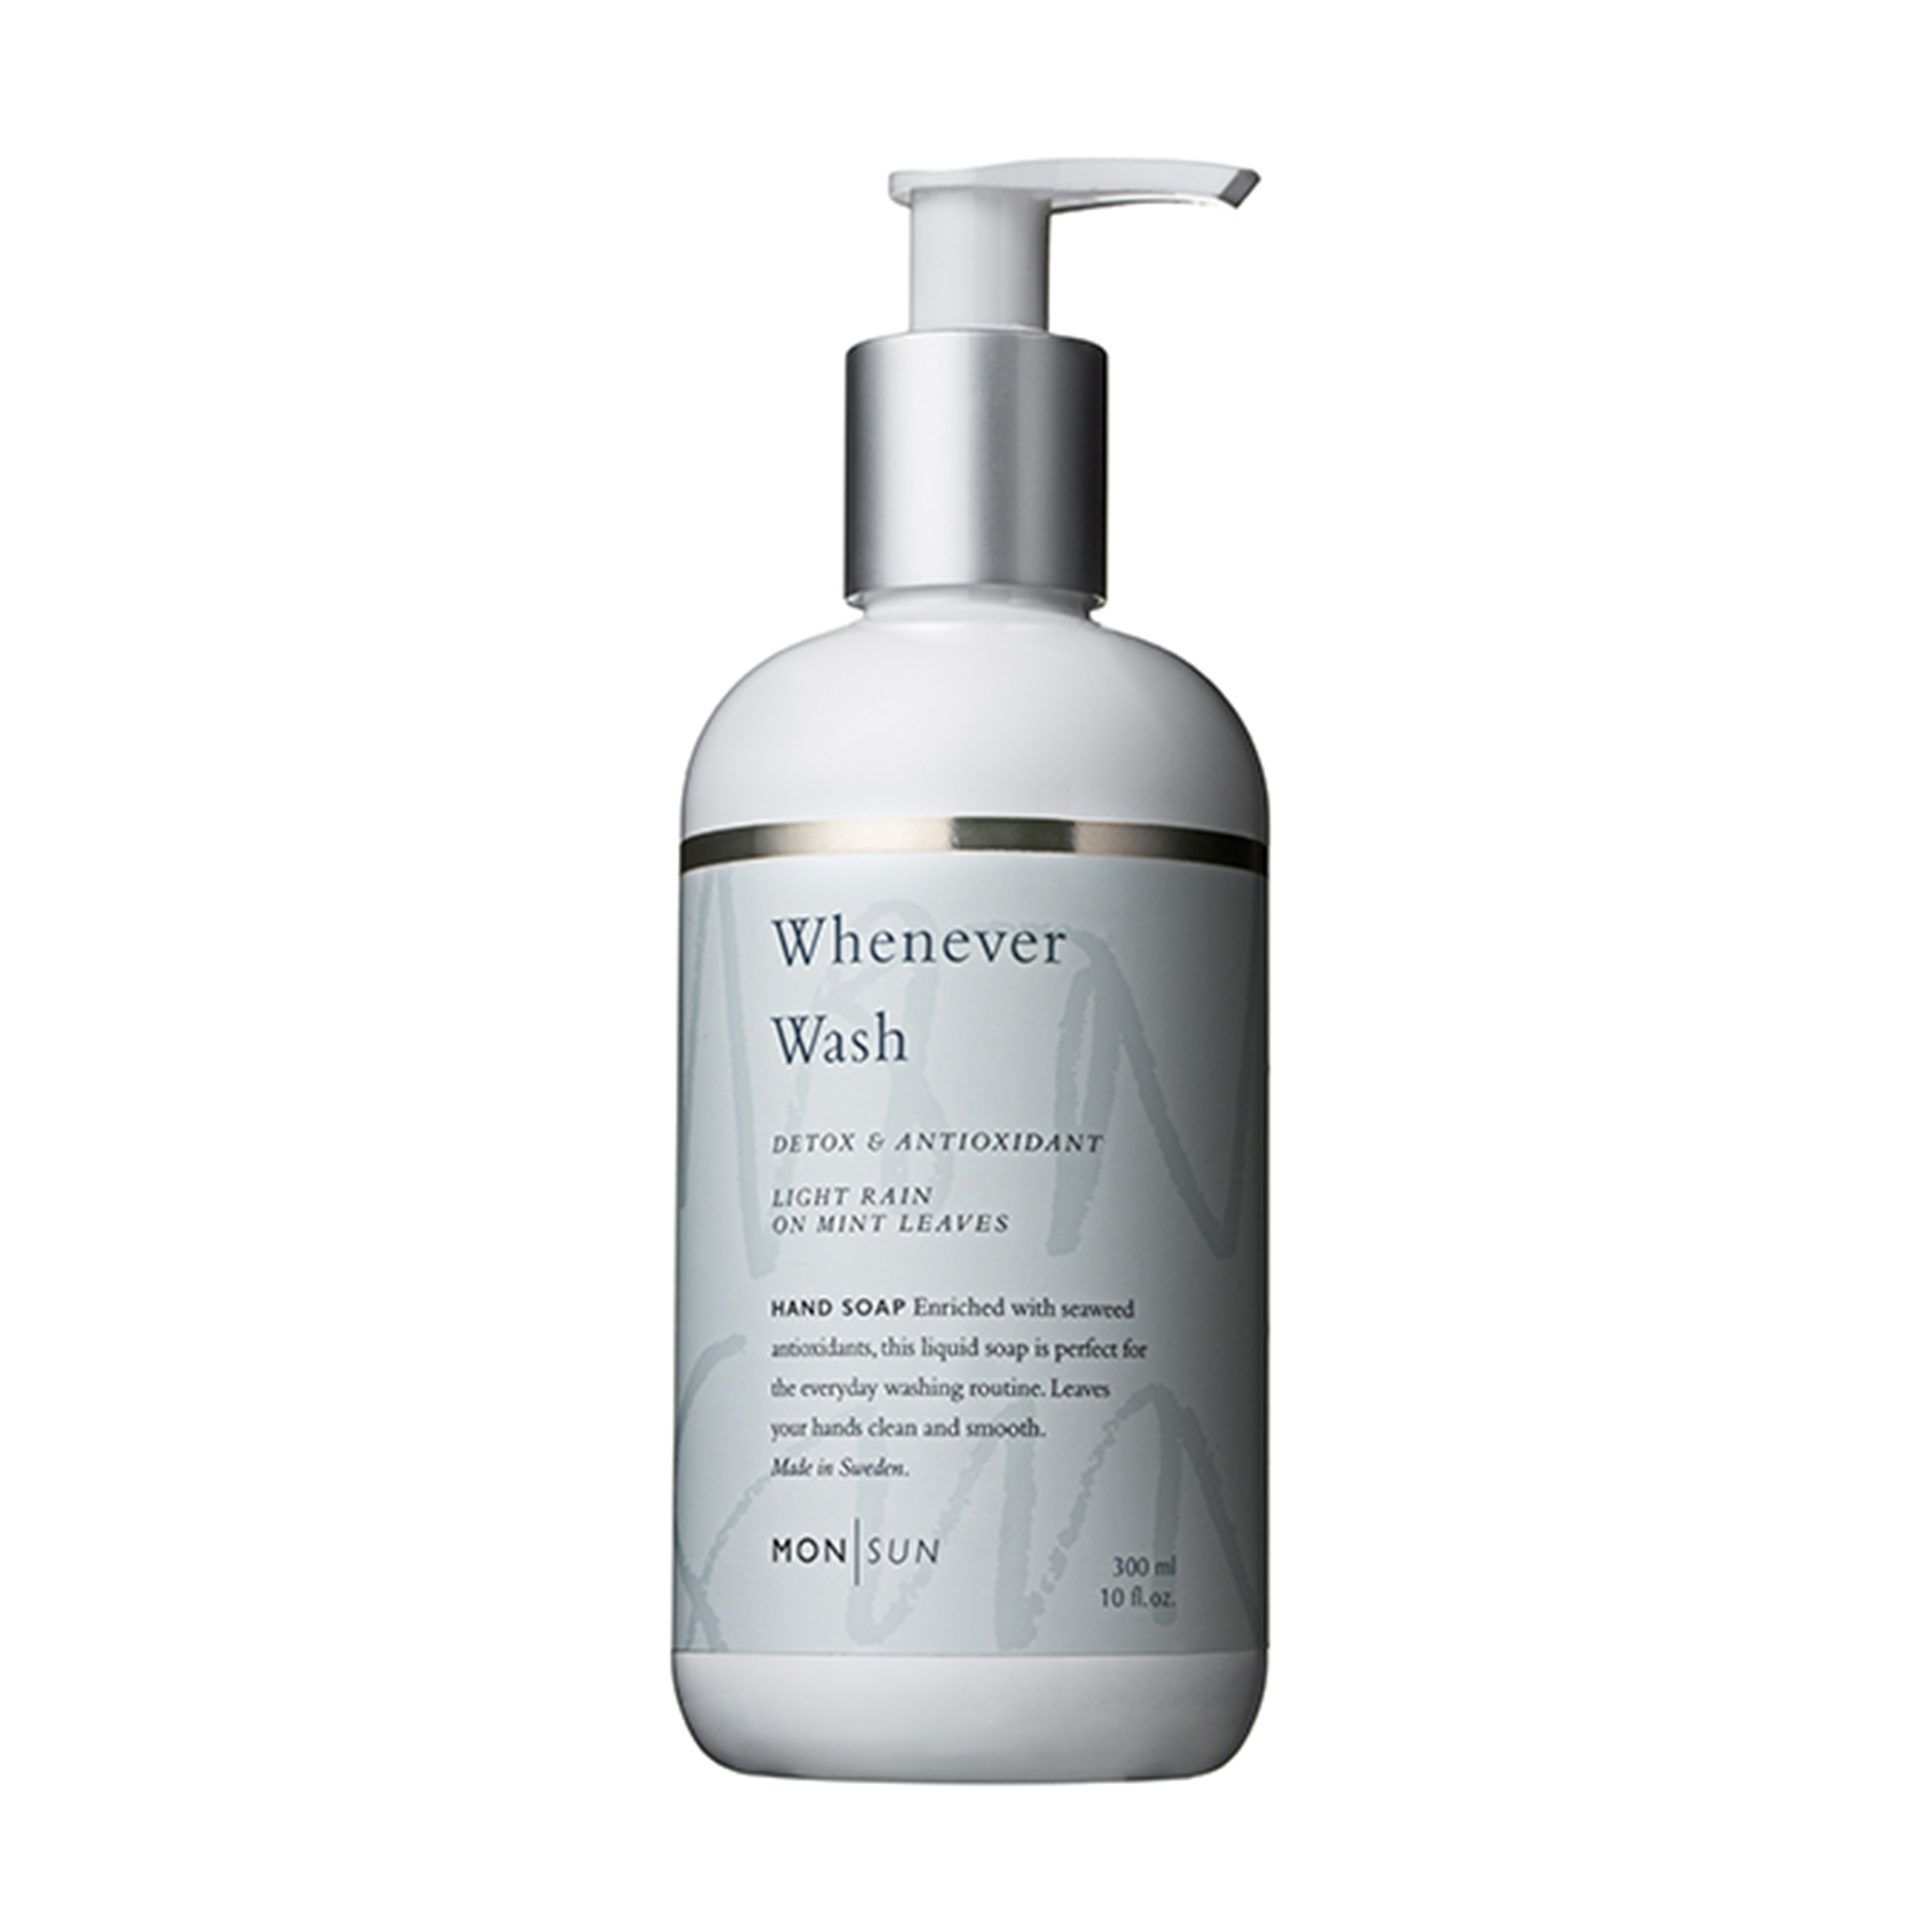 Whenever Wash Detox & Antioxidant Hand Soap 300 ml